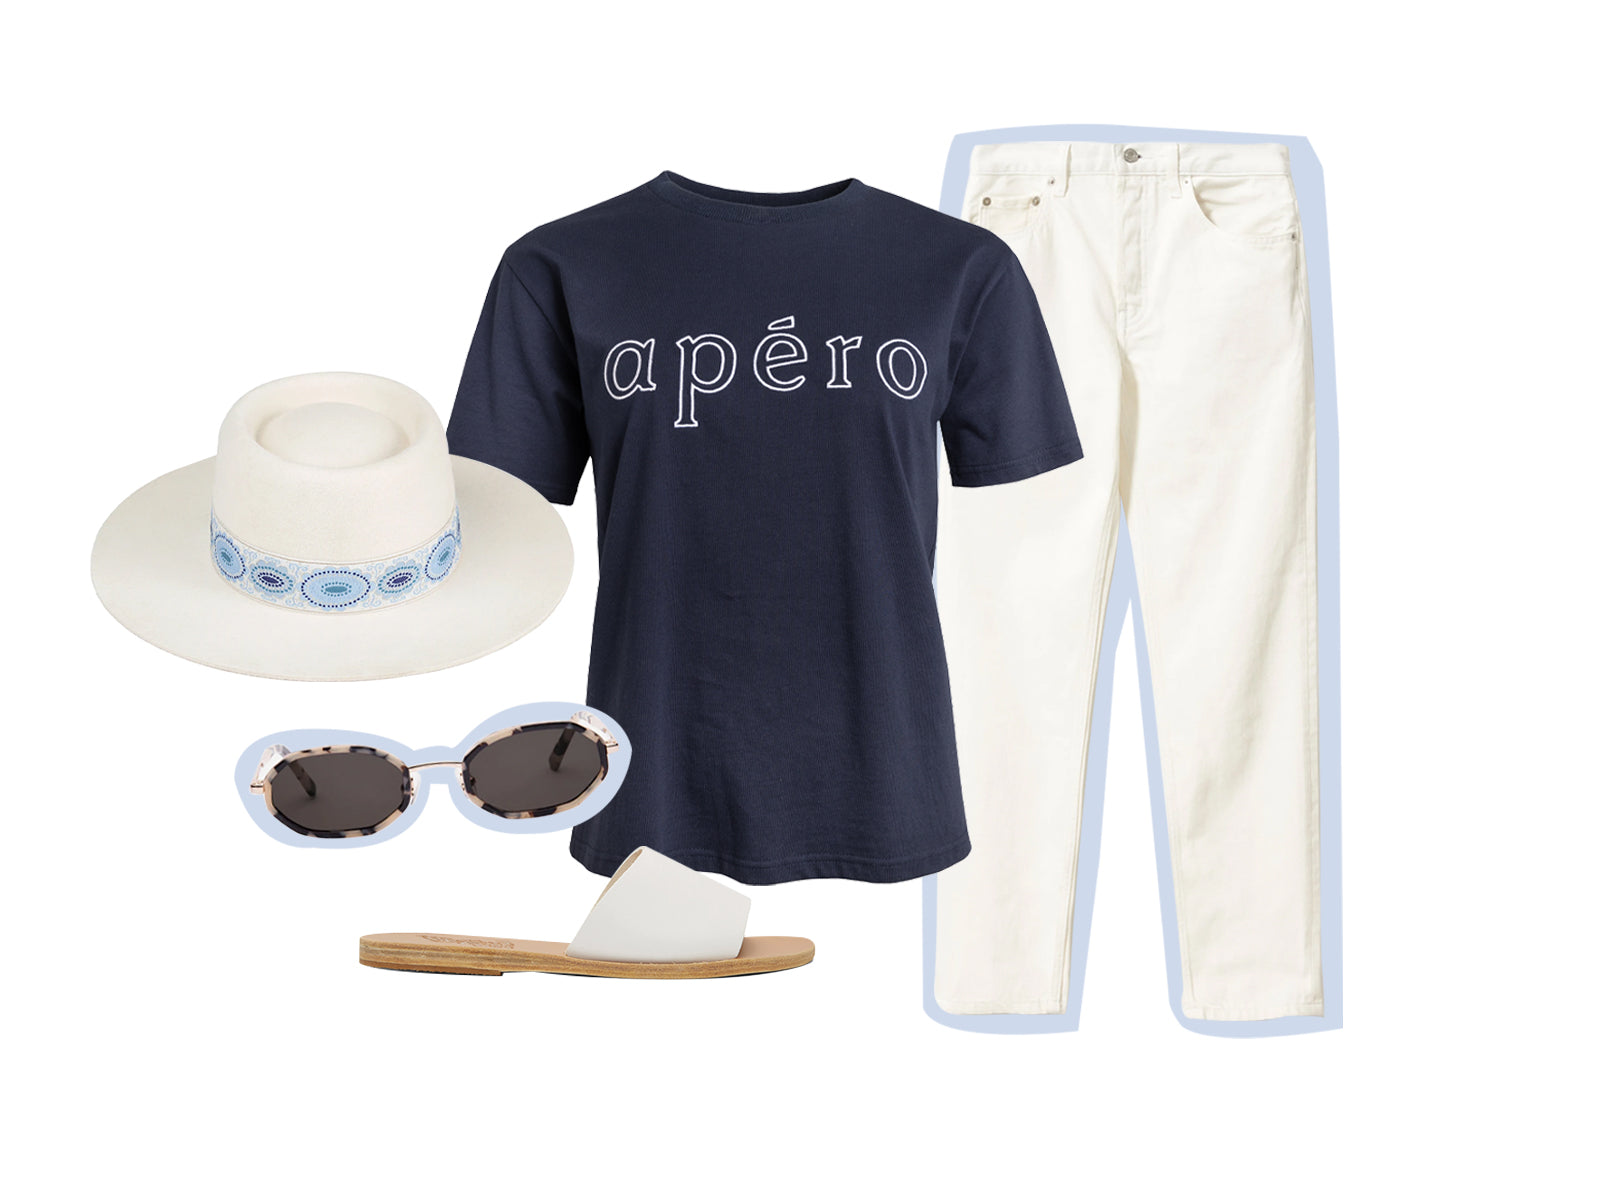 Navy Embroidered Outline Logo Tee styled with white jeans and accessories